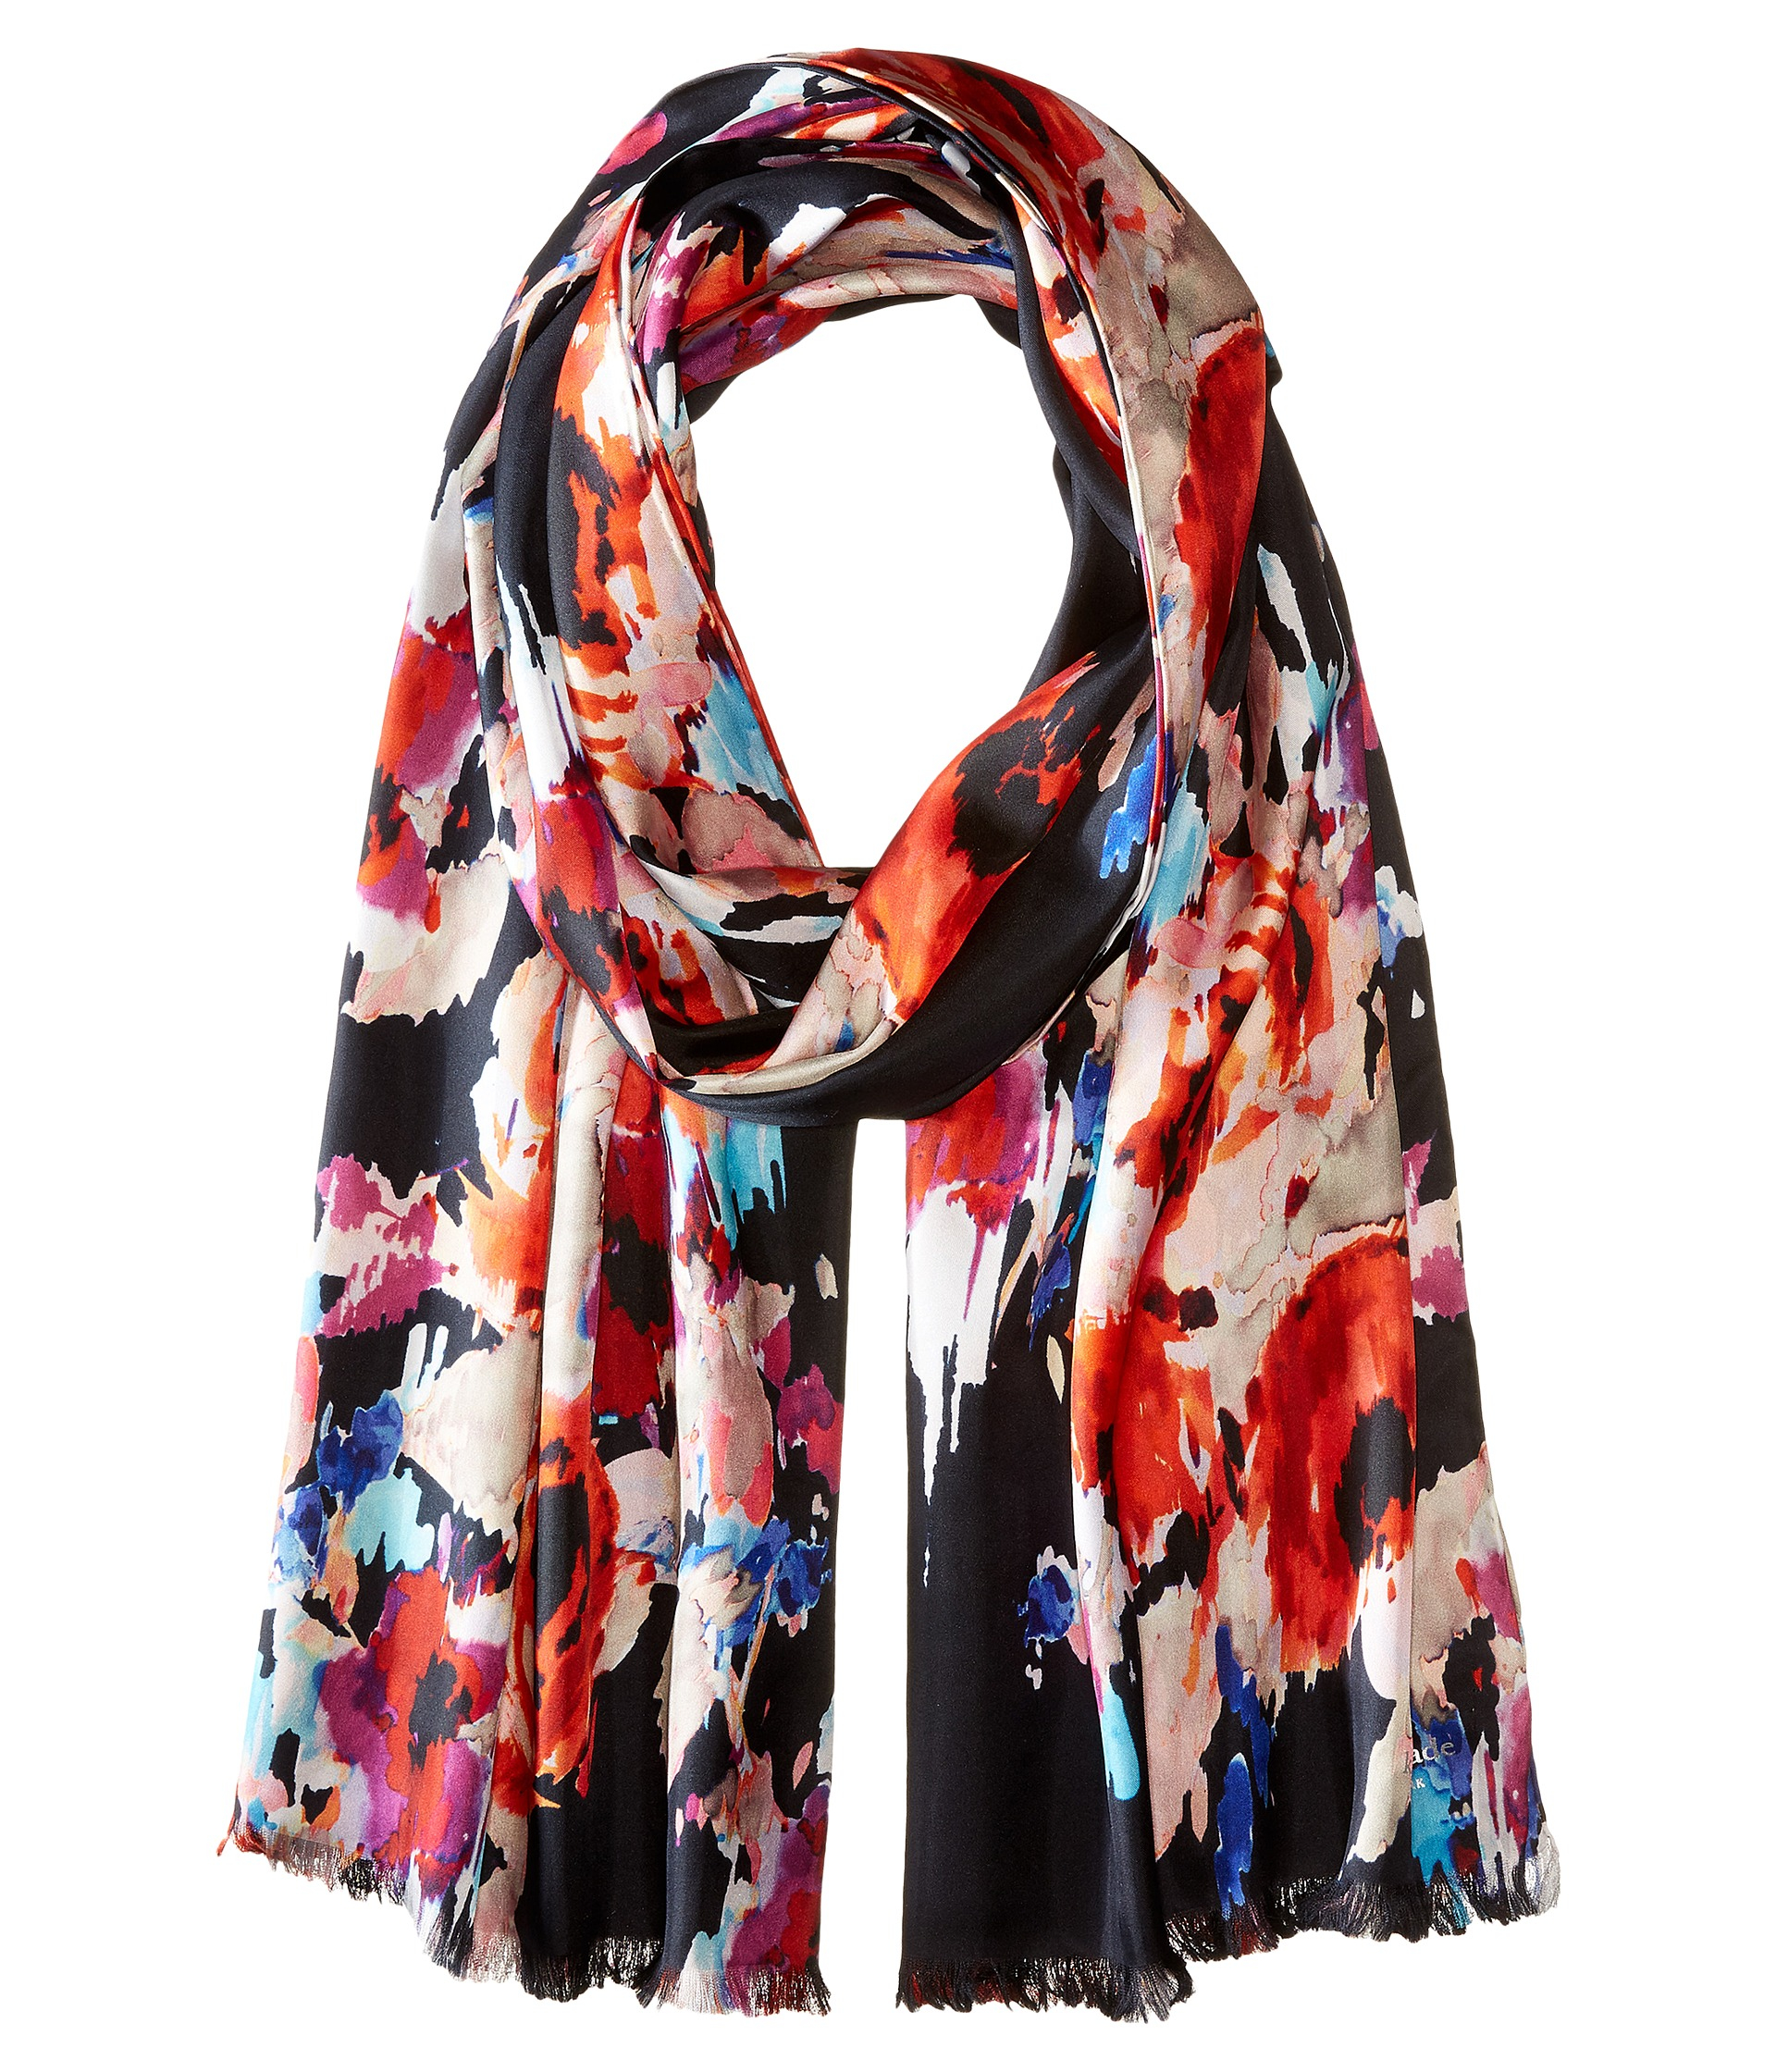 56facb3d773f0 Kate Spade Blurry Floral Oblong Scarf in Blue - Lyst